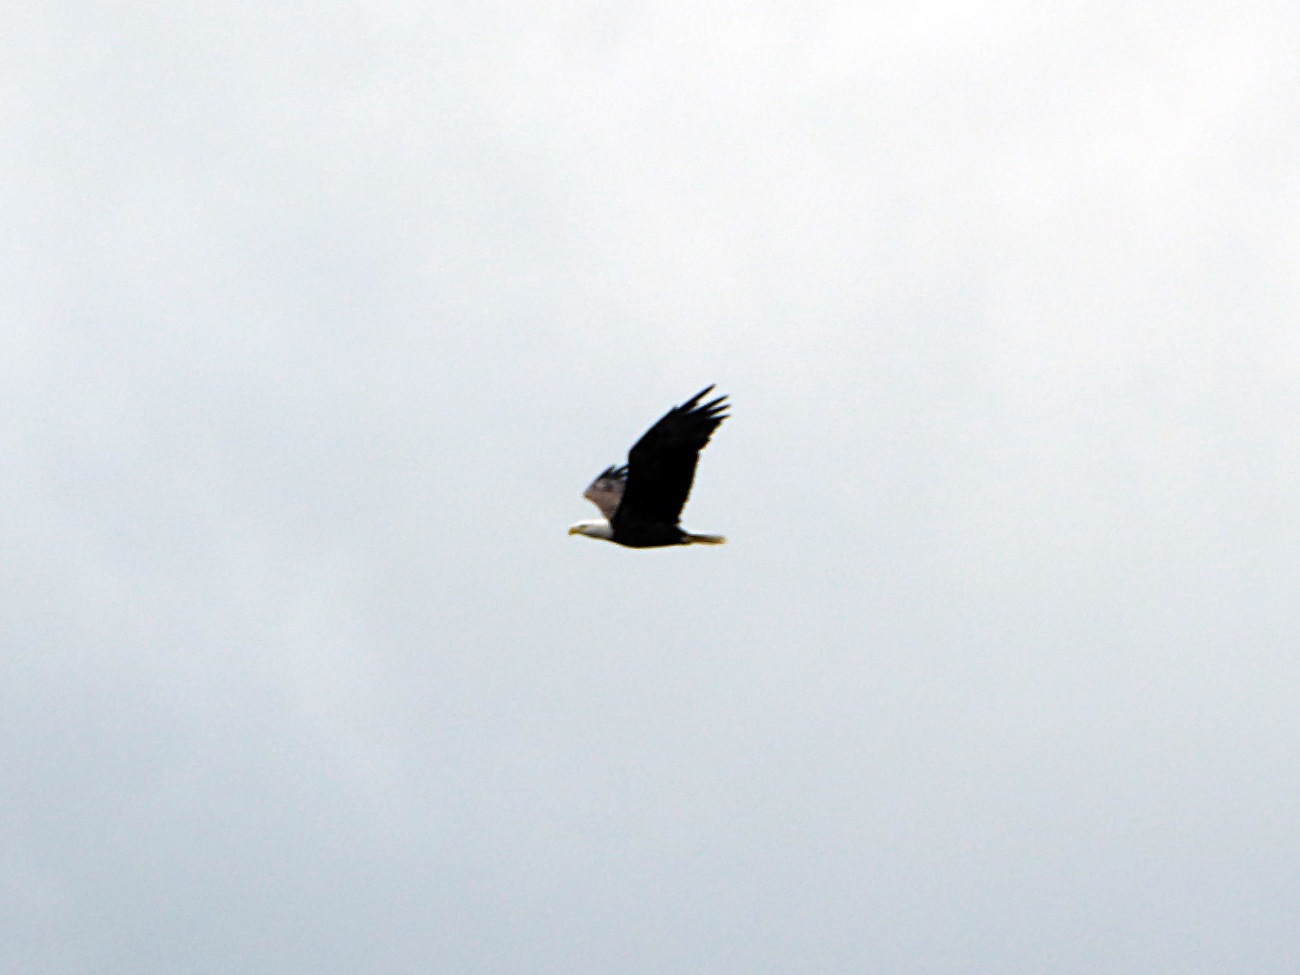 20170917_142230_Eagle Flyby